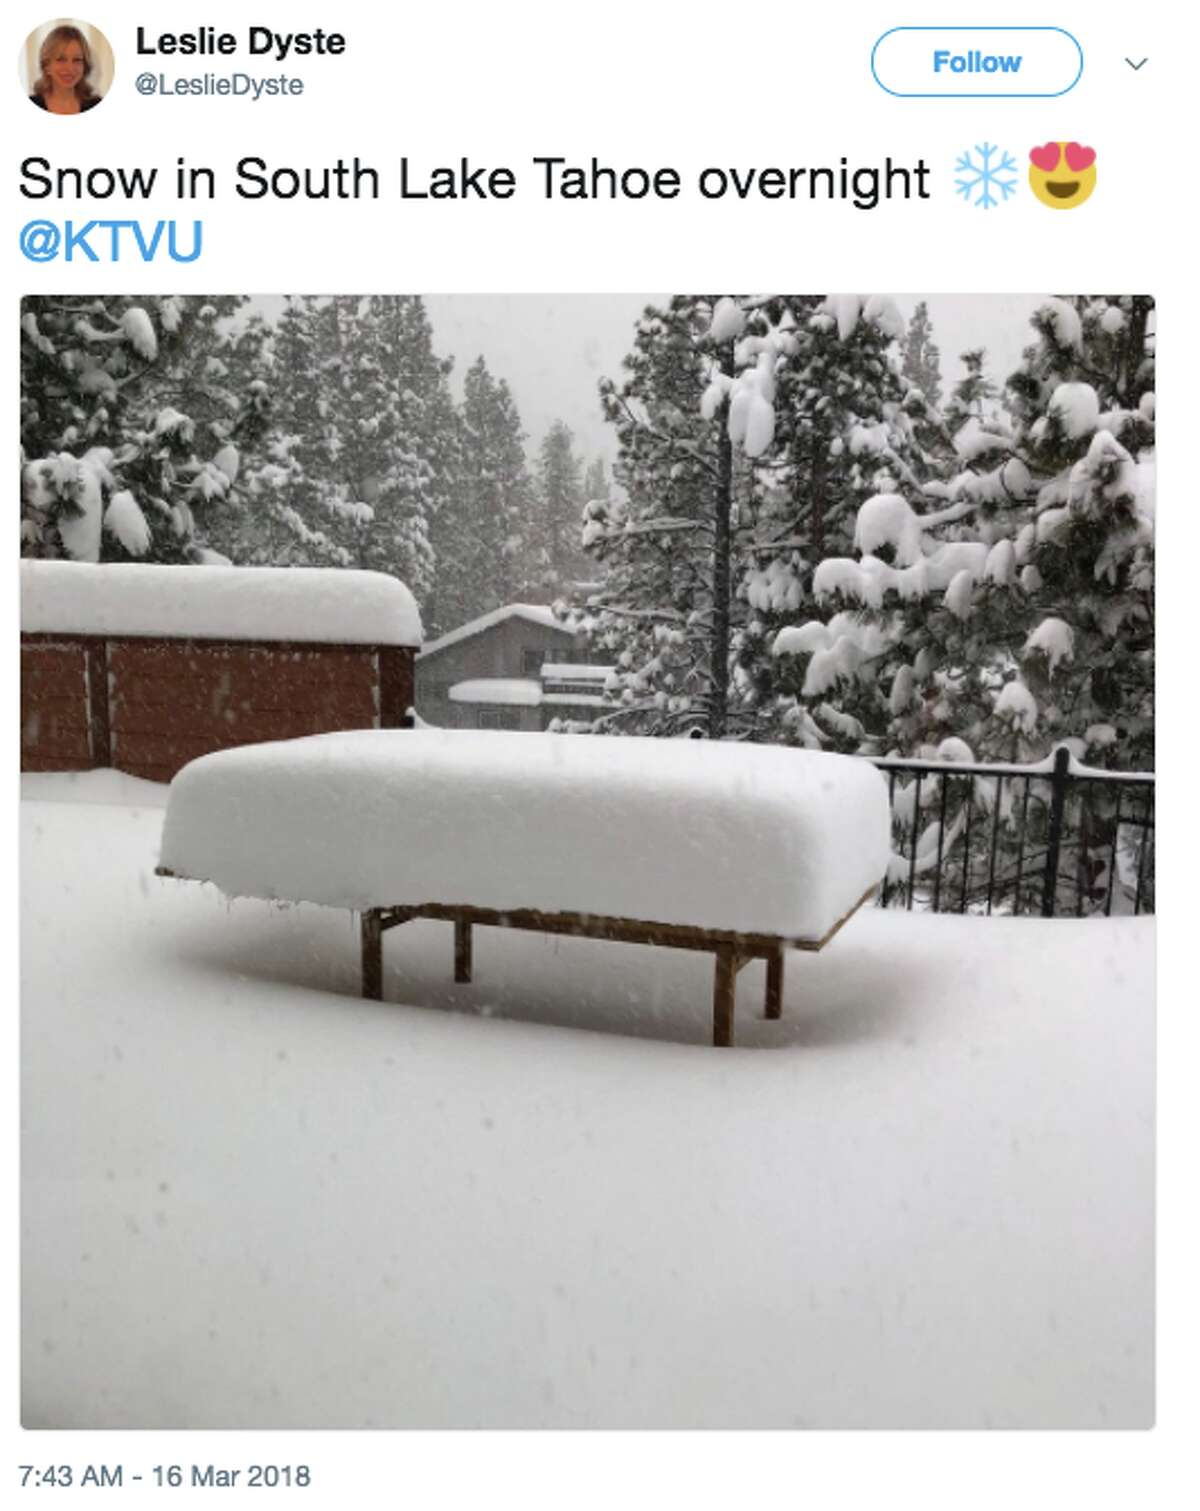 A fierce storm pummeled the northern Sierra Friday, March 16, 2018, and snow piled up everything. Many in social media were quick to share images of the impressive snowfall.